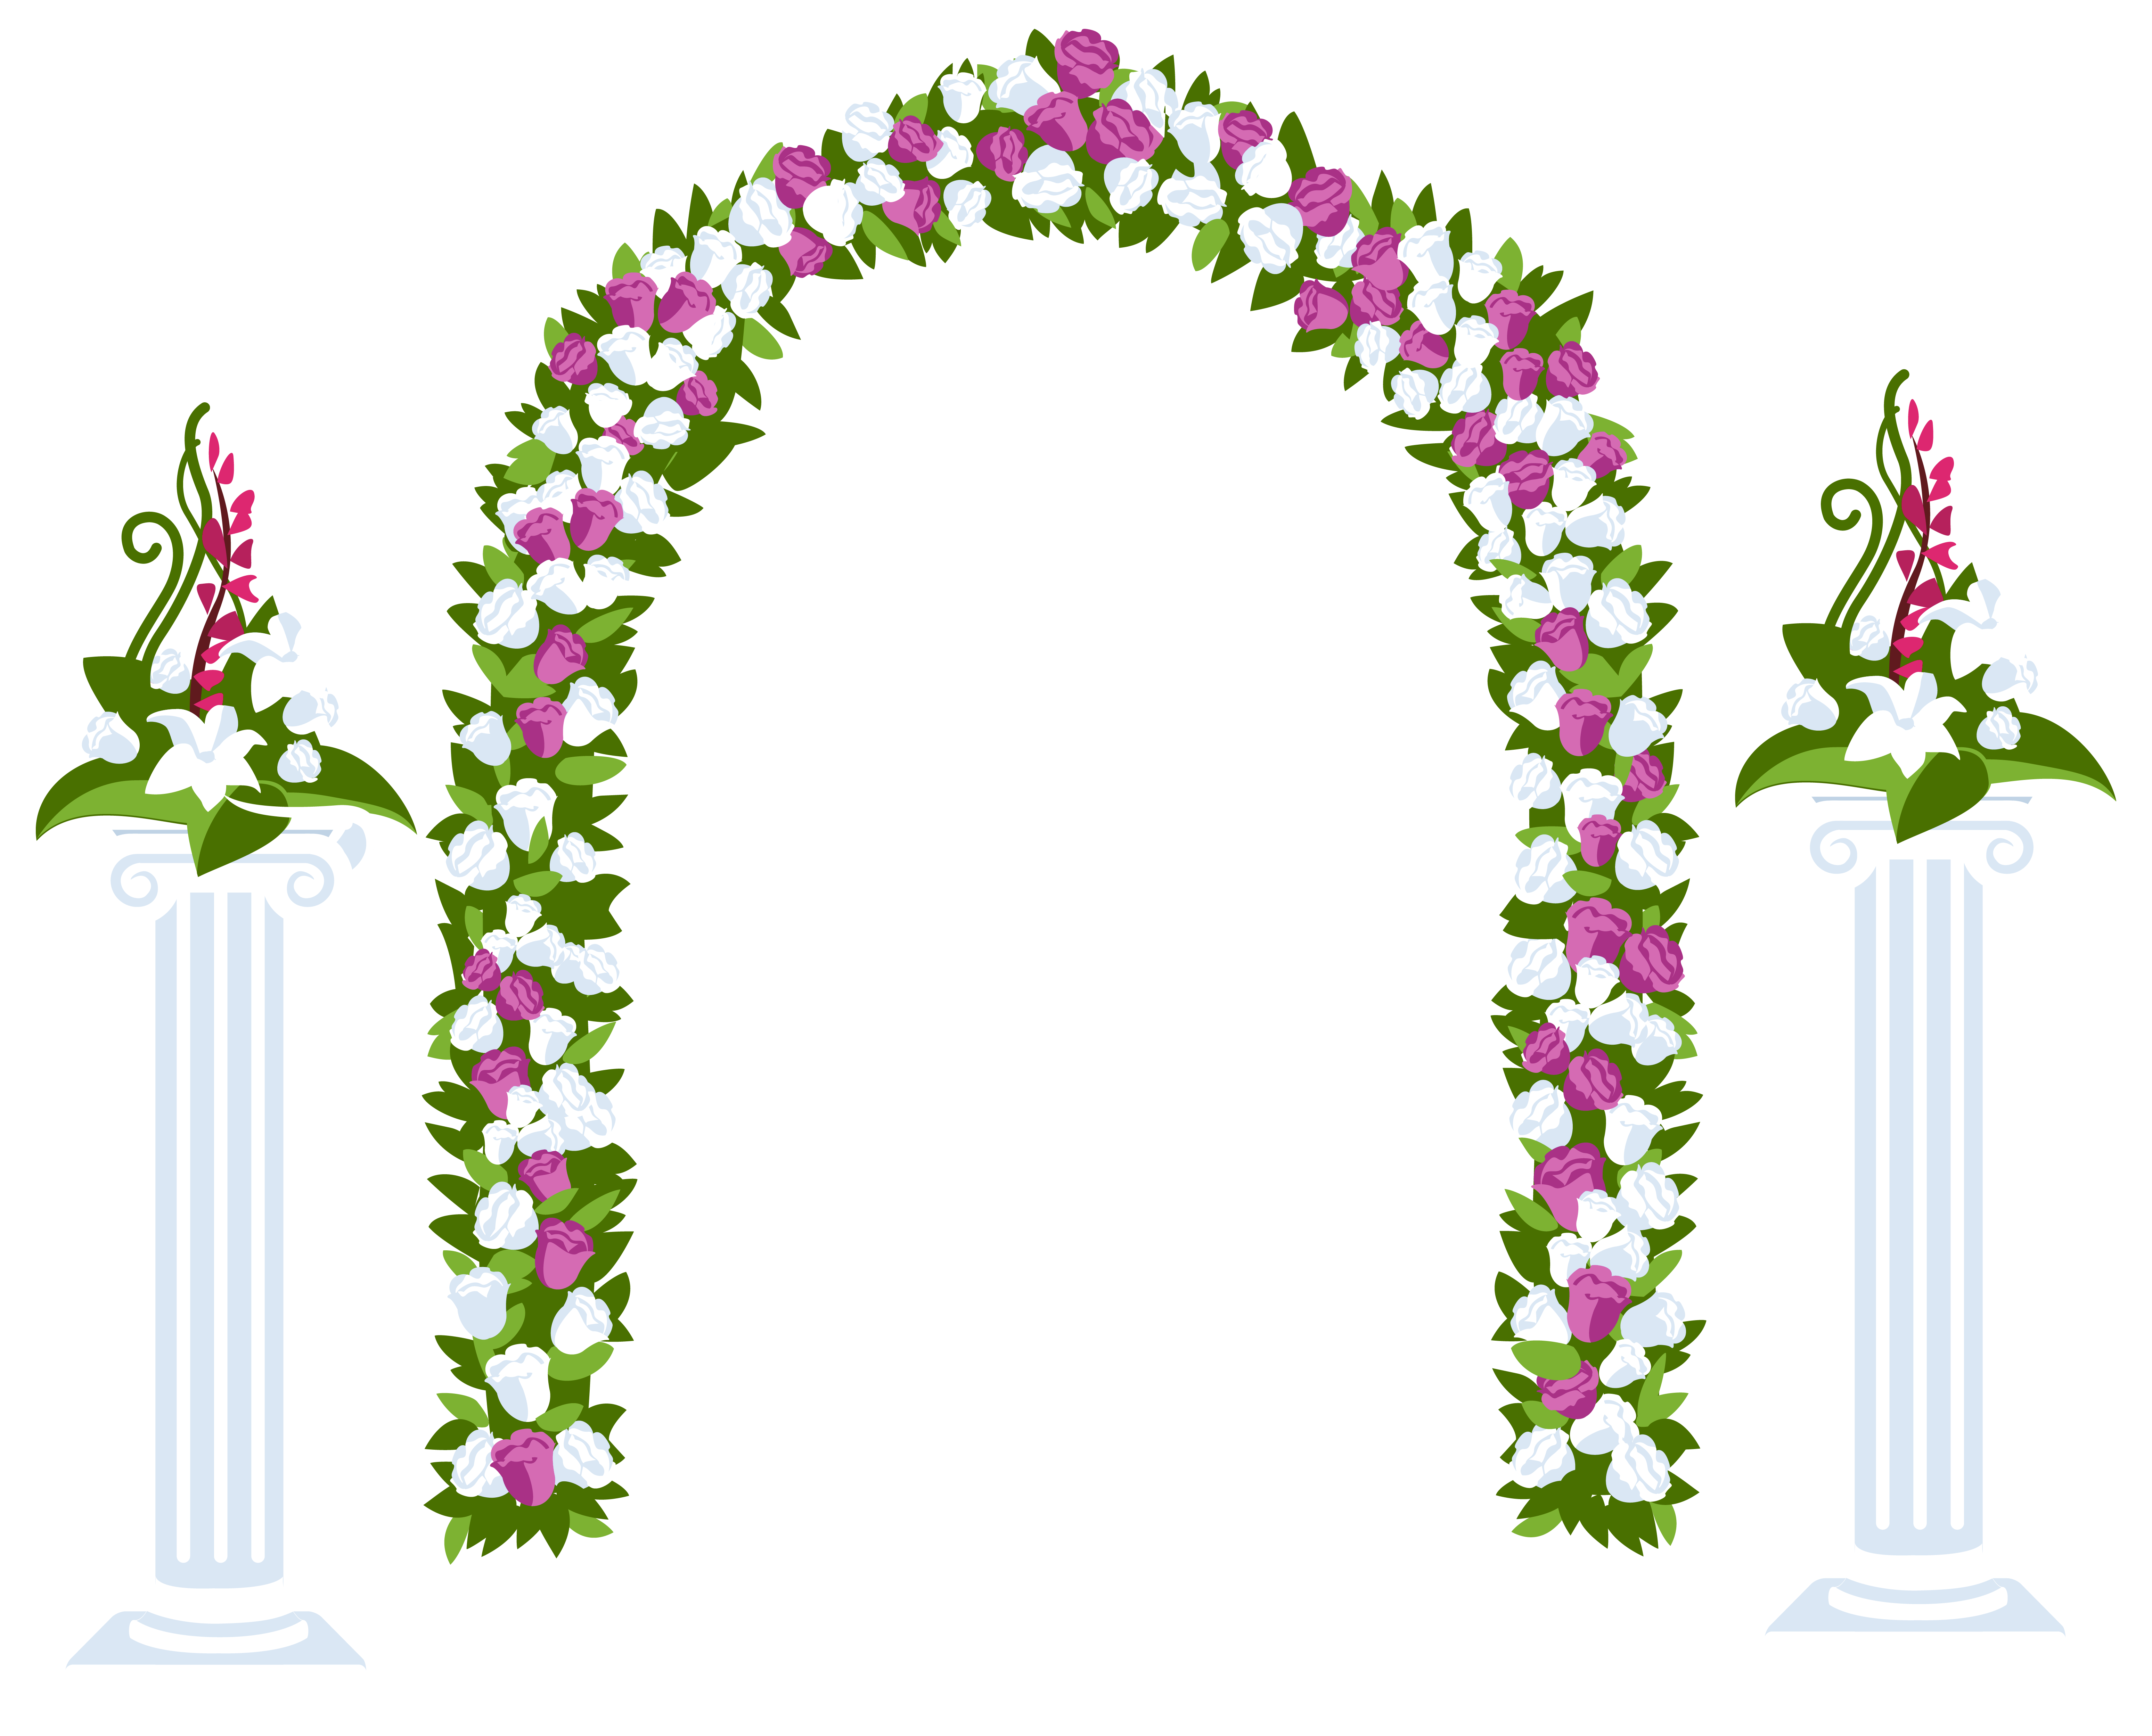 Flower arch png. Floral and columns best